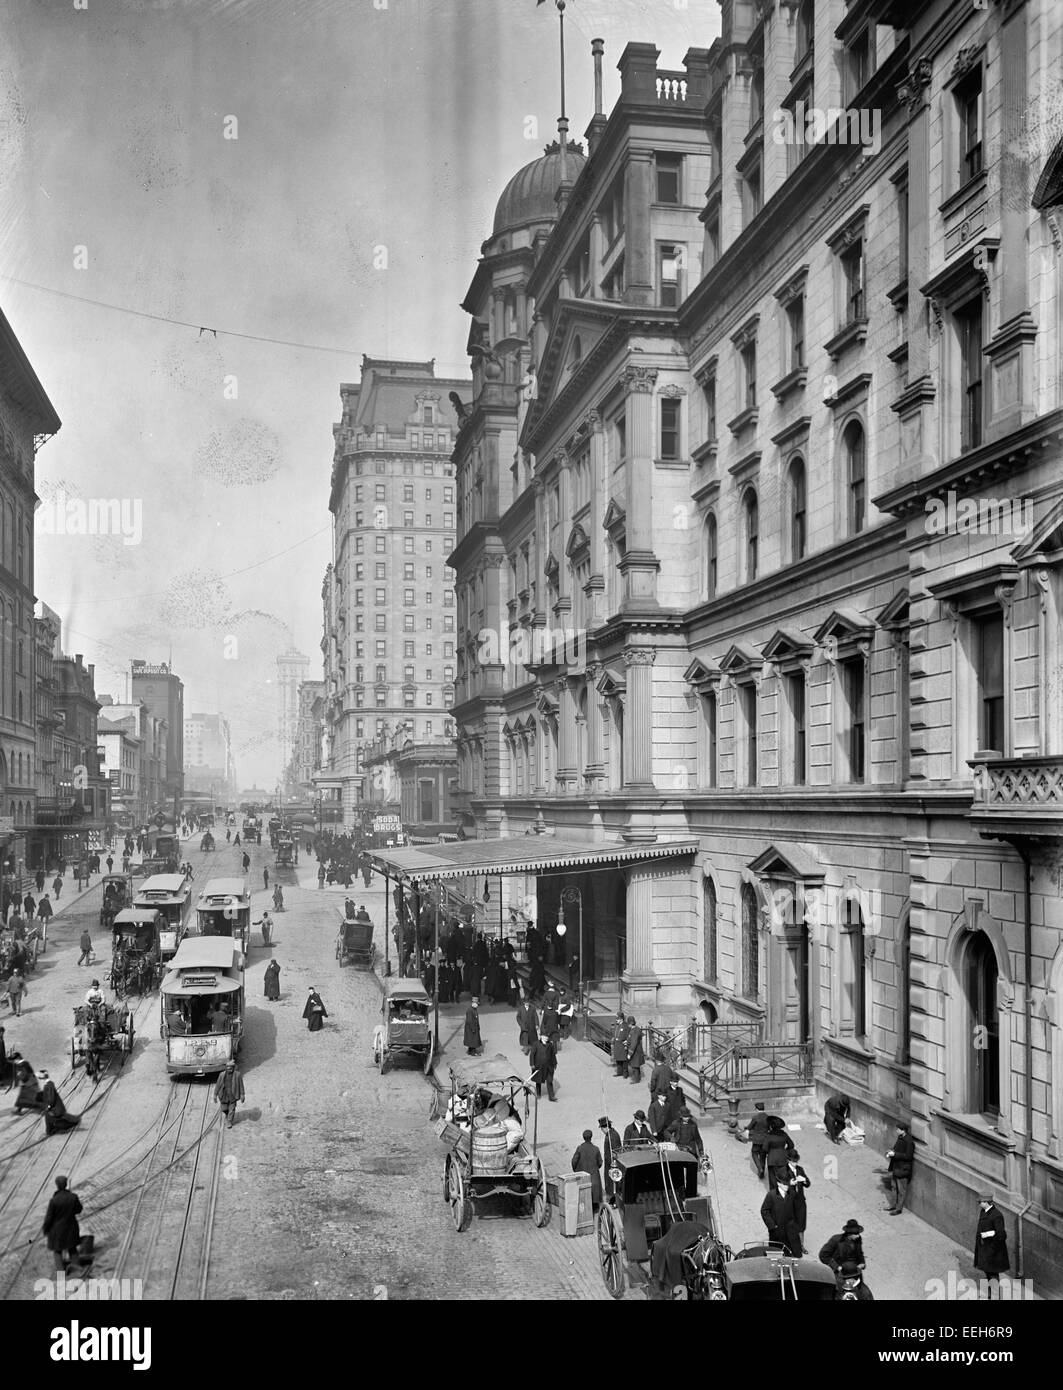 New York City, Snap Shatow, 42nd Street, showing entrance to Grand Central Station, circa 1910 - Stock Image